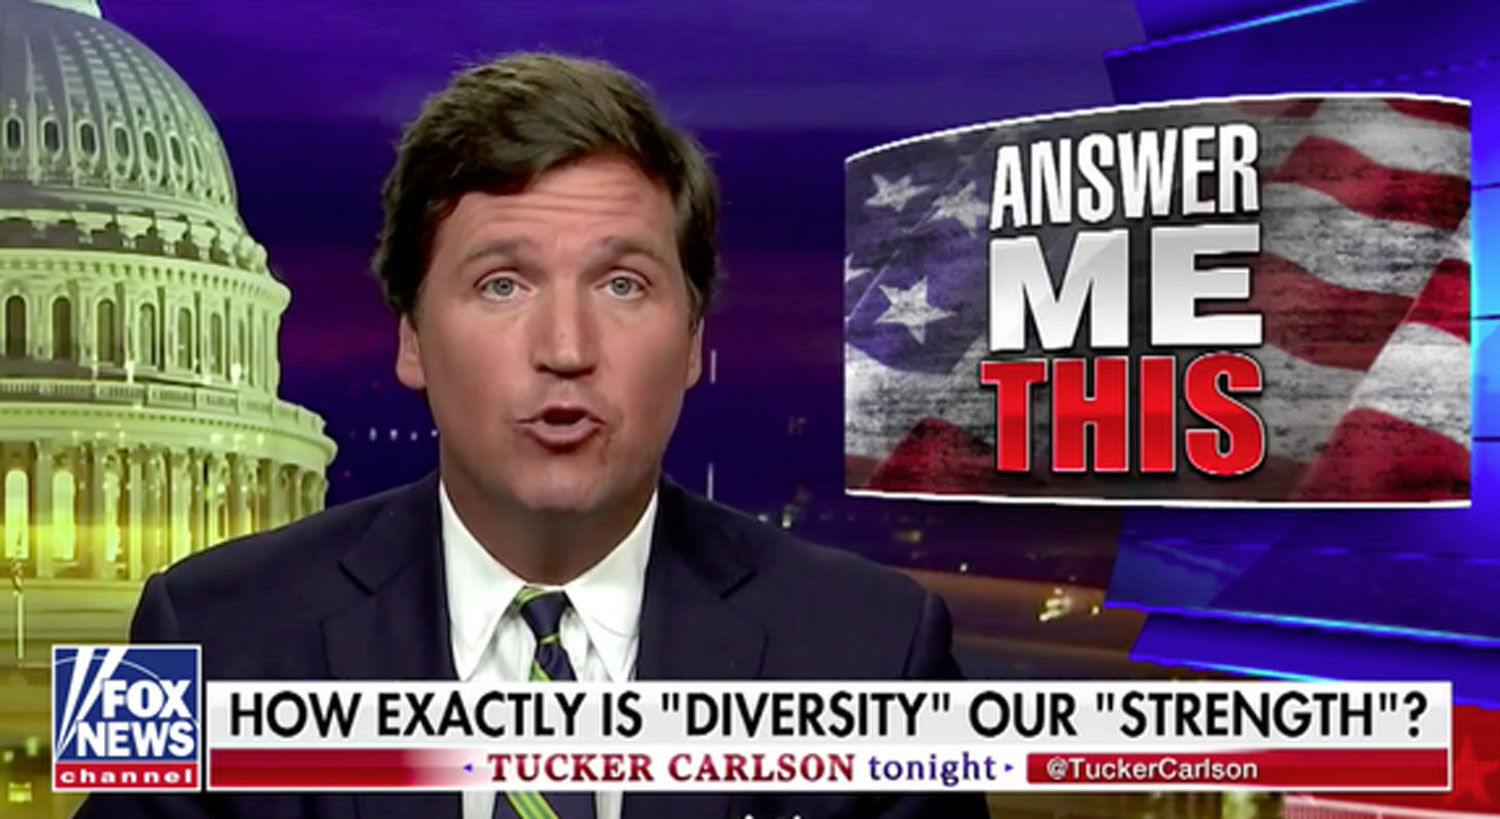 These are Tucker Carlson's leading advertisers